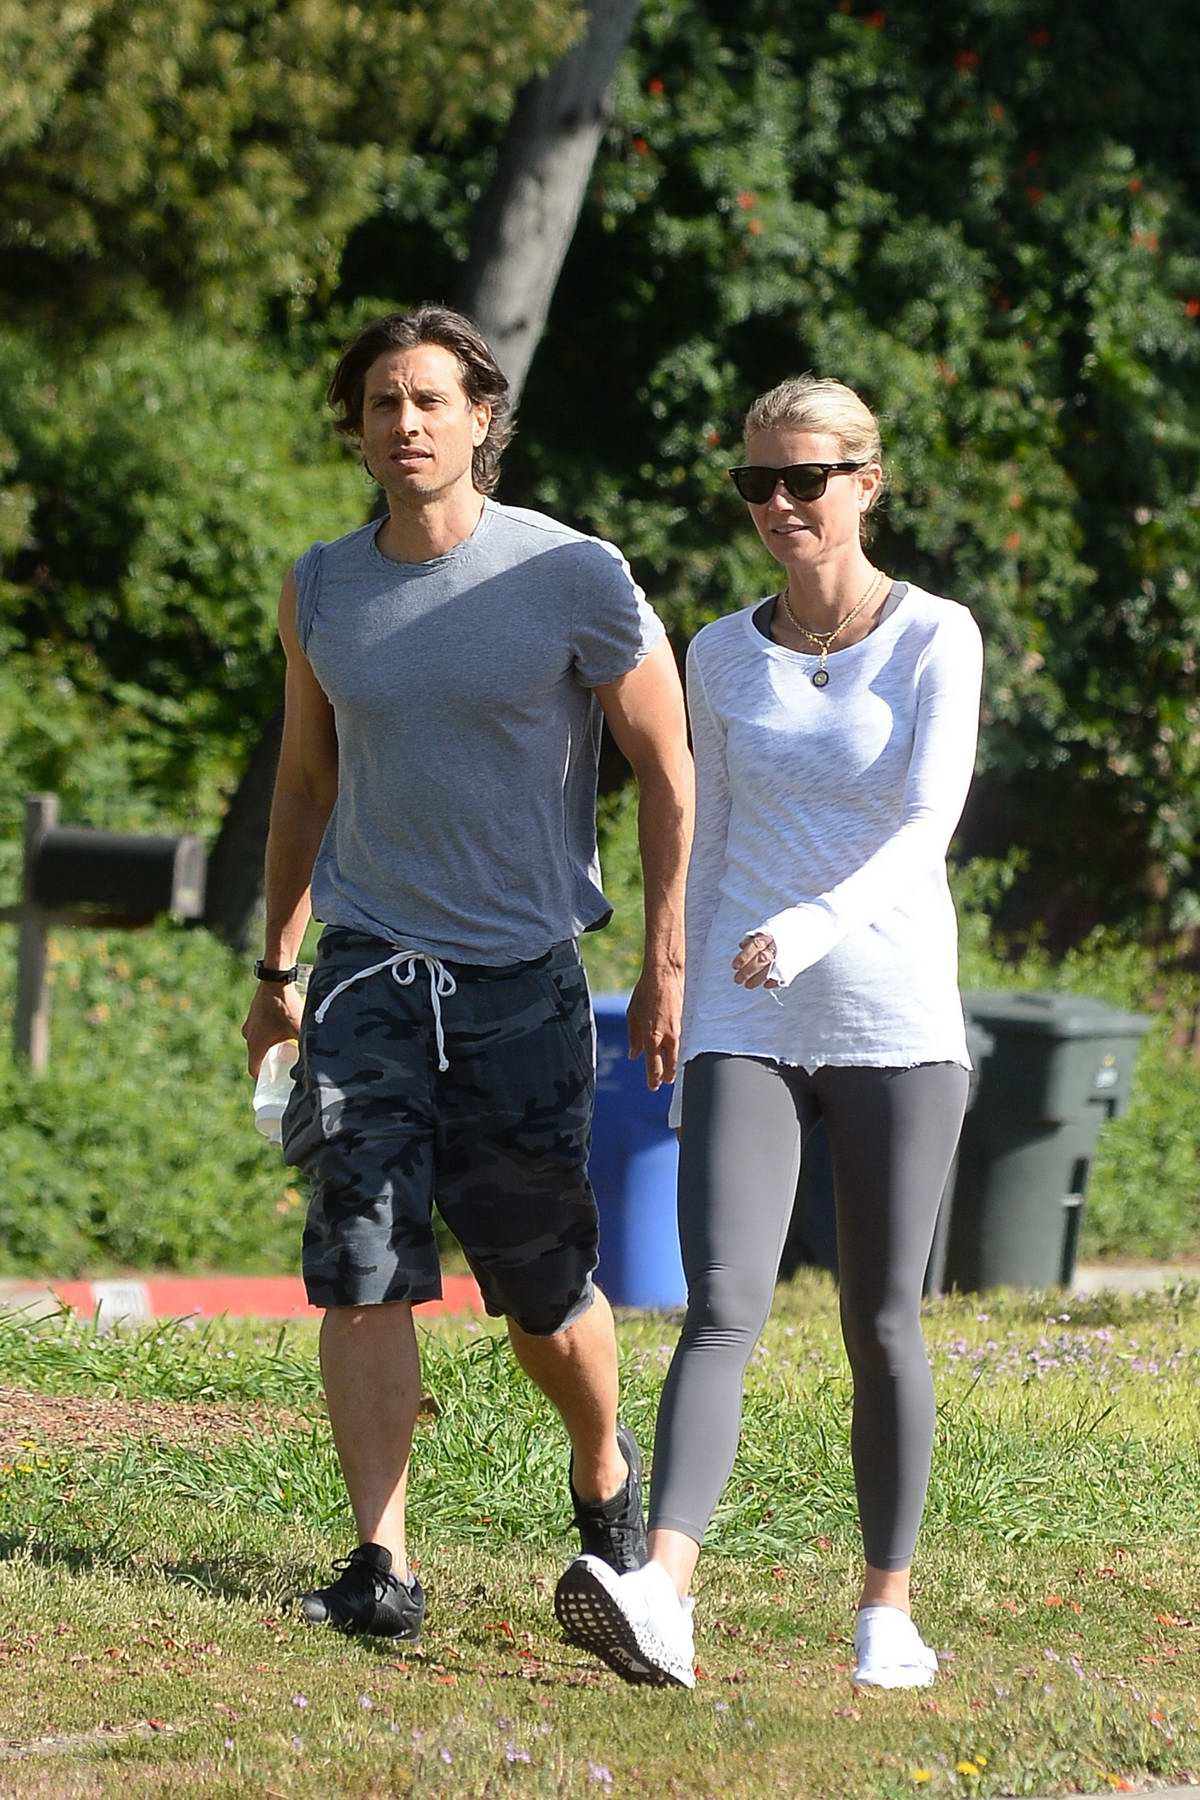 Gwyneth Paltrow spotted in a full sleeve white top and grey leggings while out for a hike with husband Brad Falchuk in Los Angeles